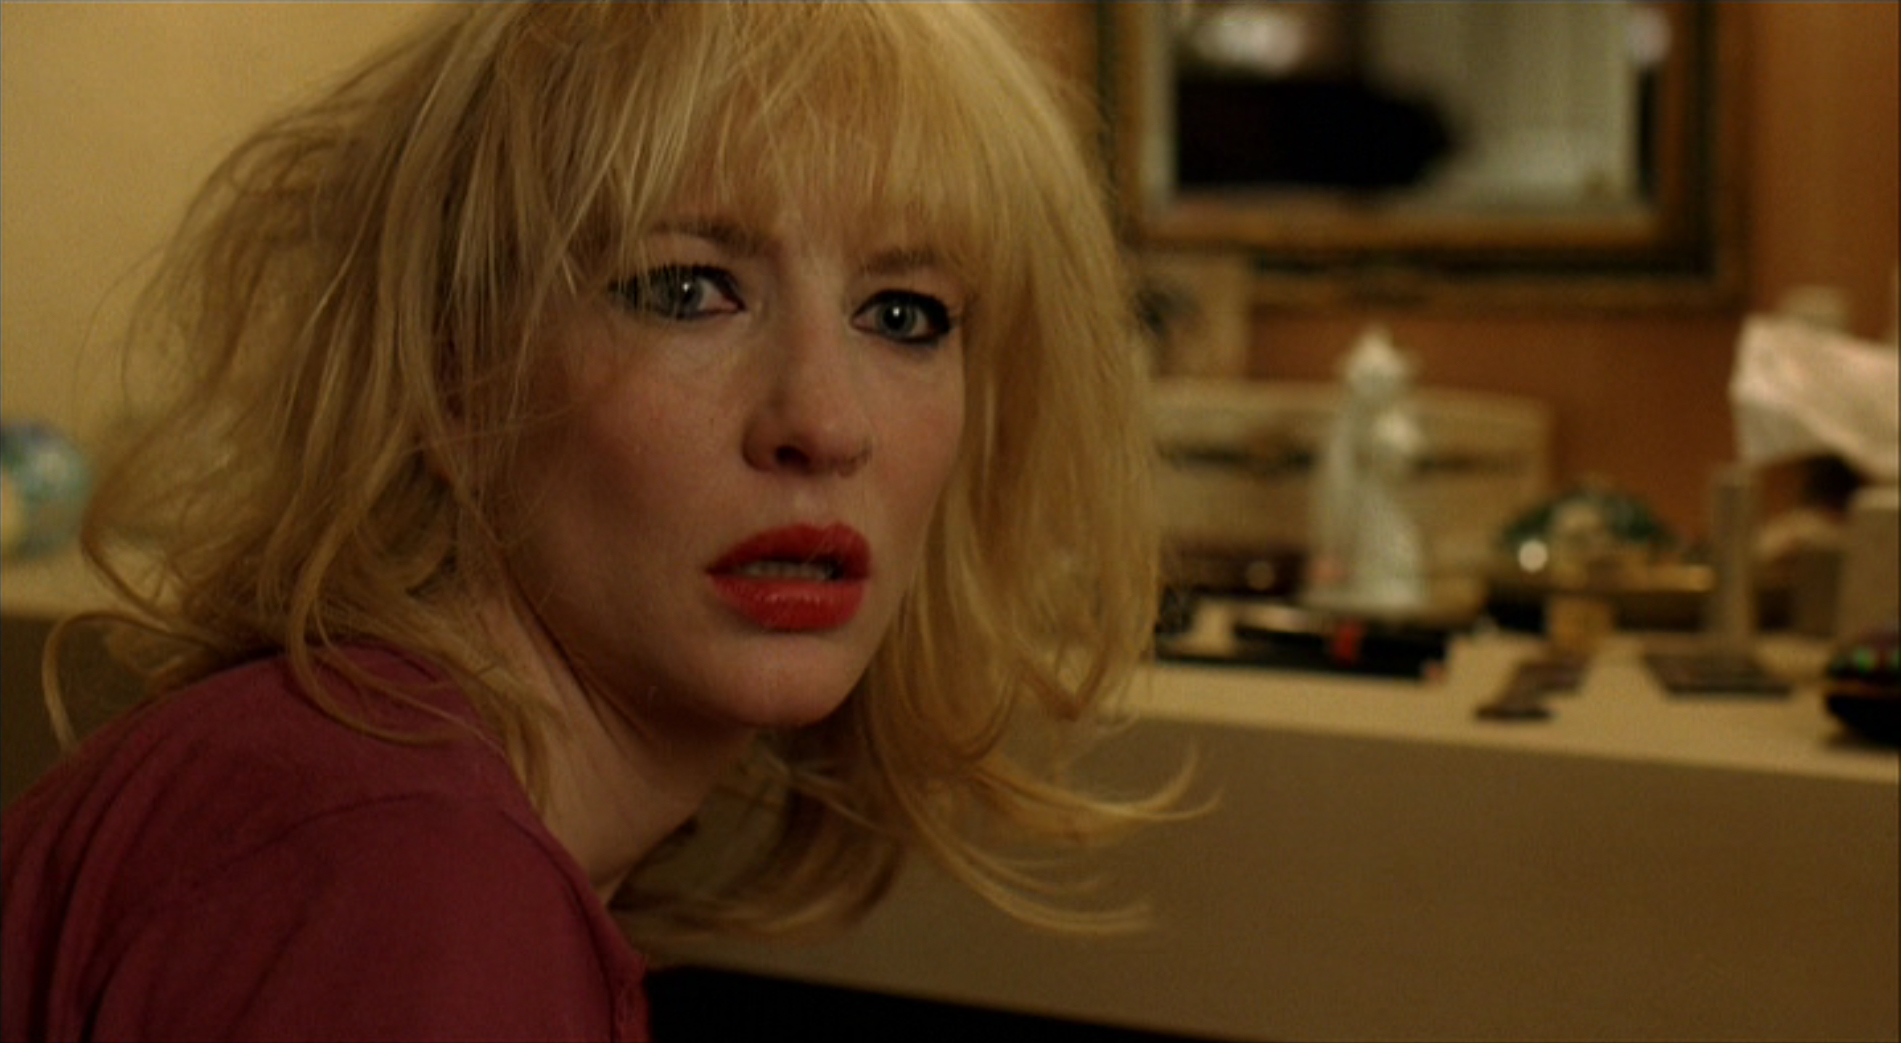 Cate Blanchett in NOTES ON A SCANDAL (2006)